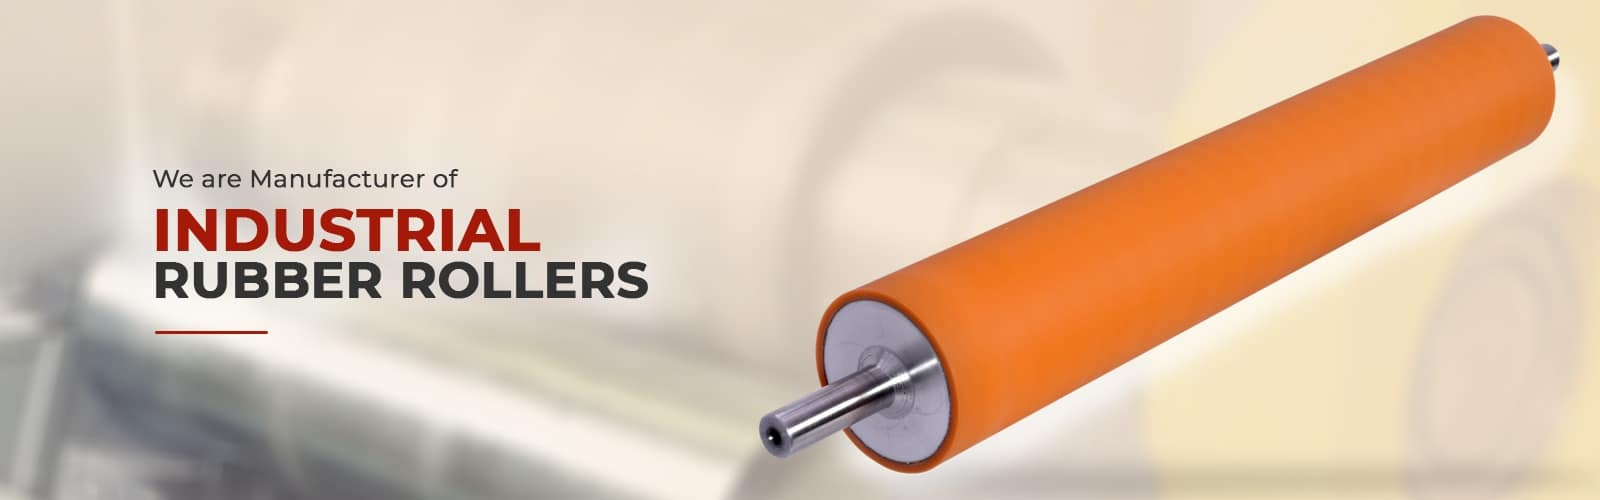 rubber roller manufacturer and supplier